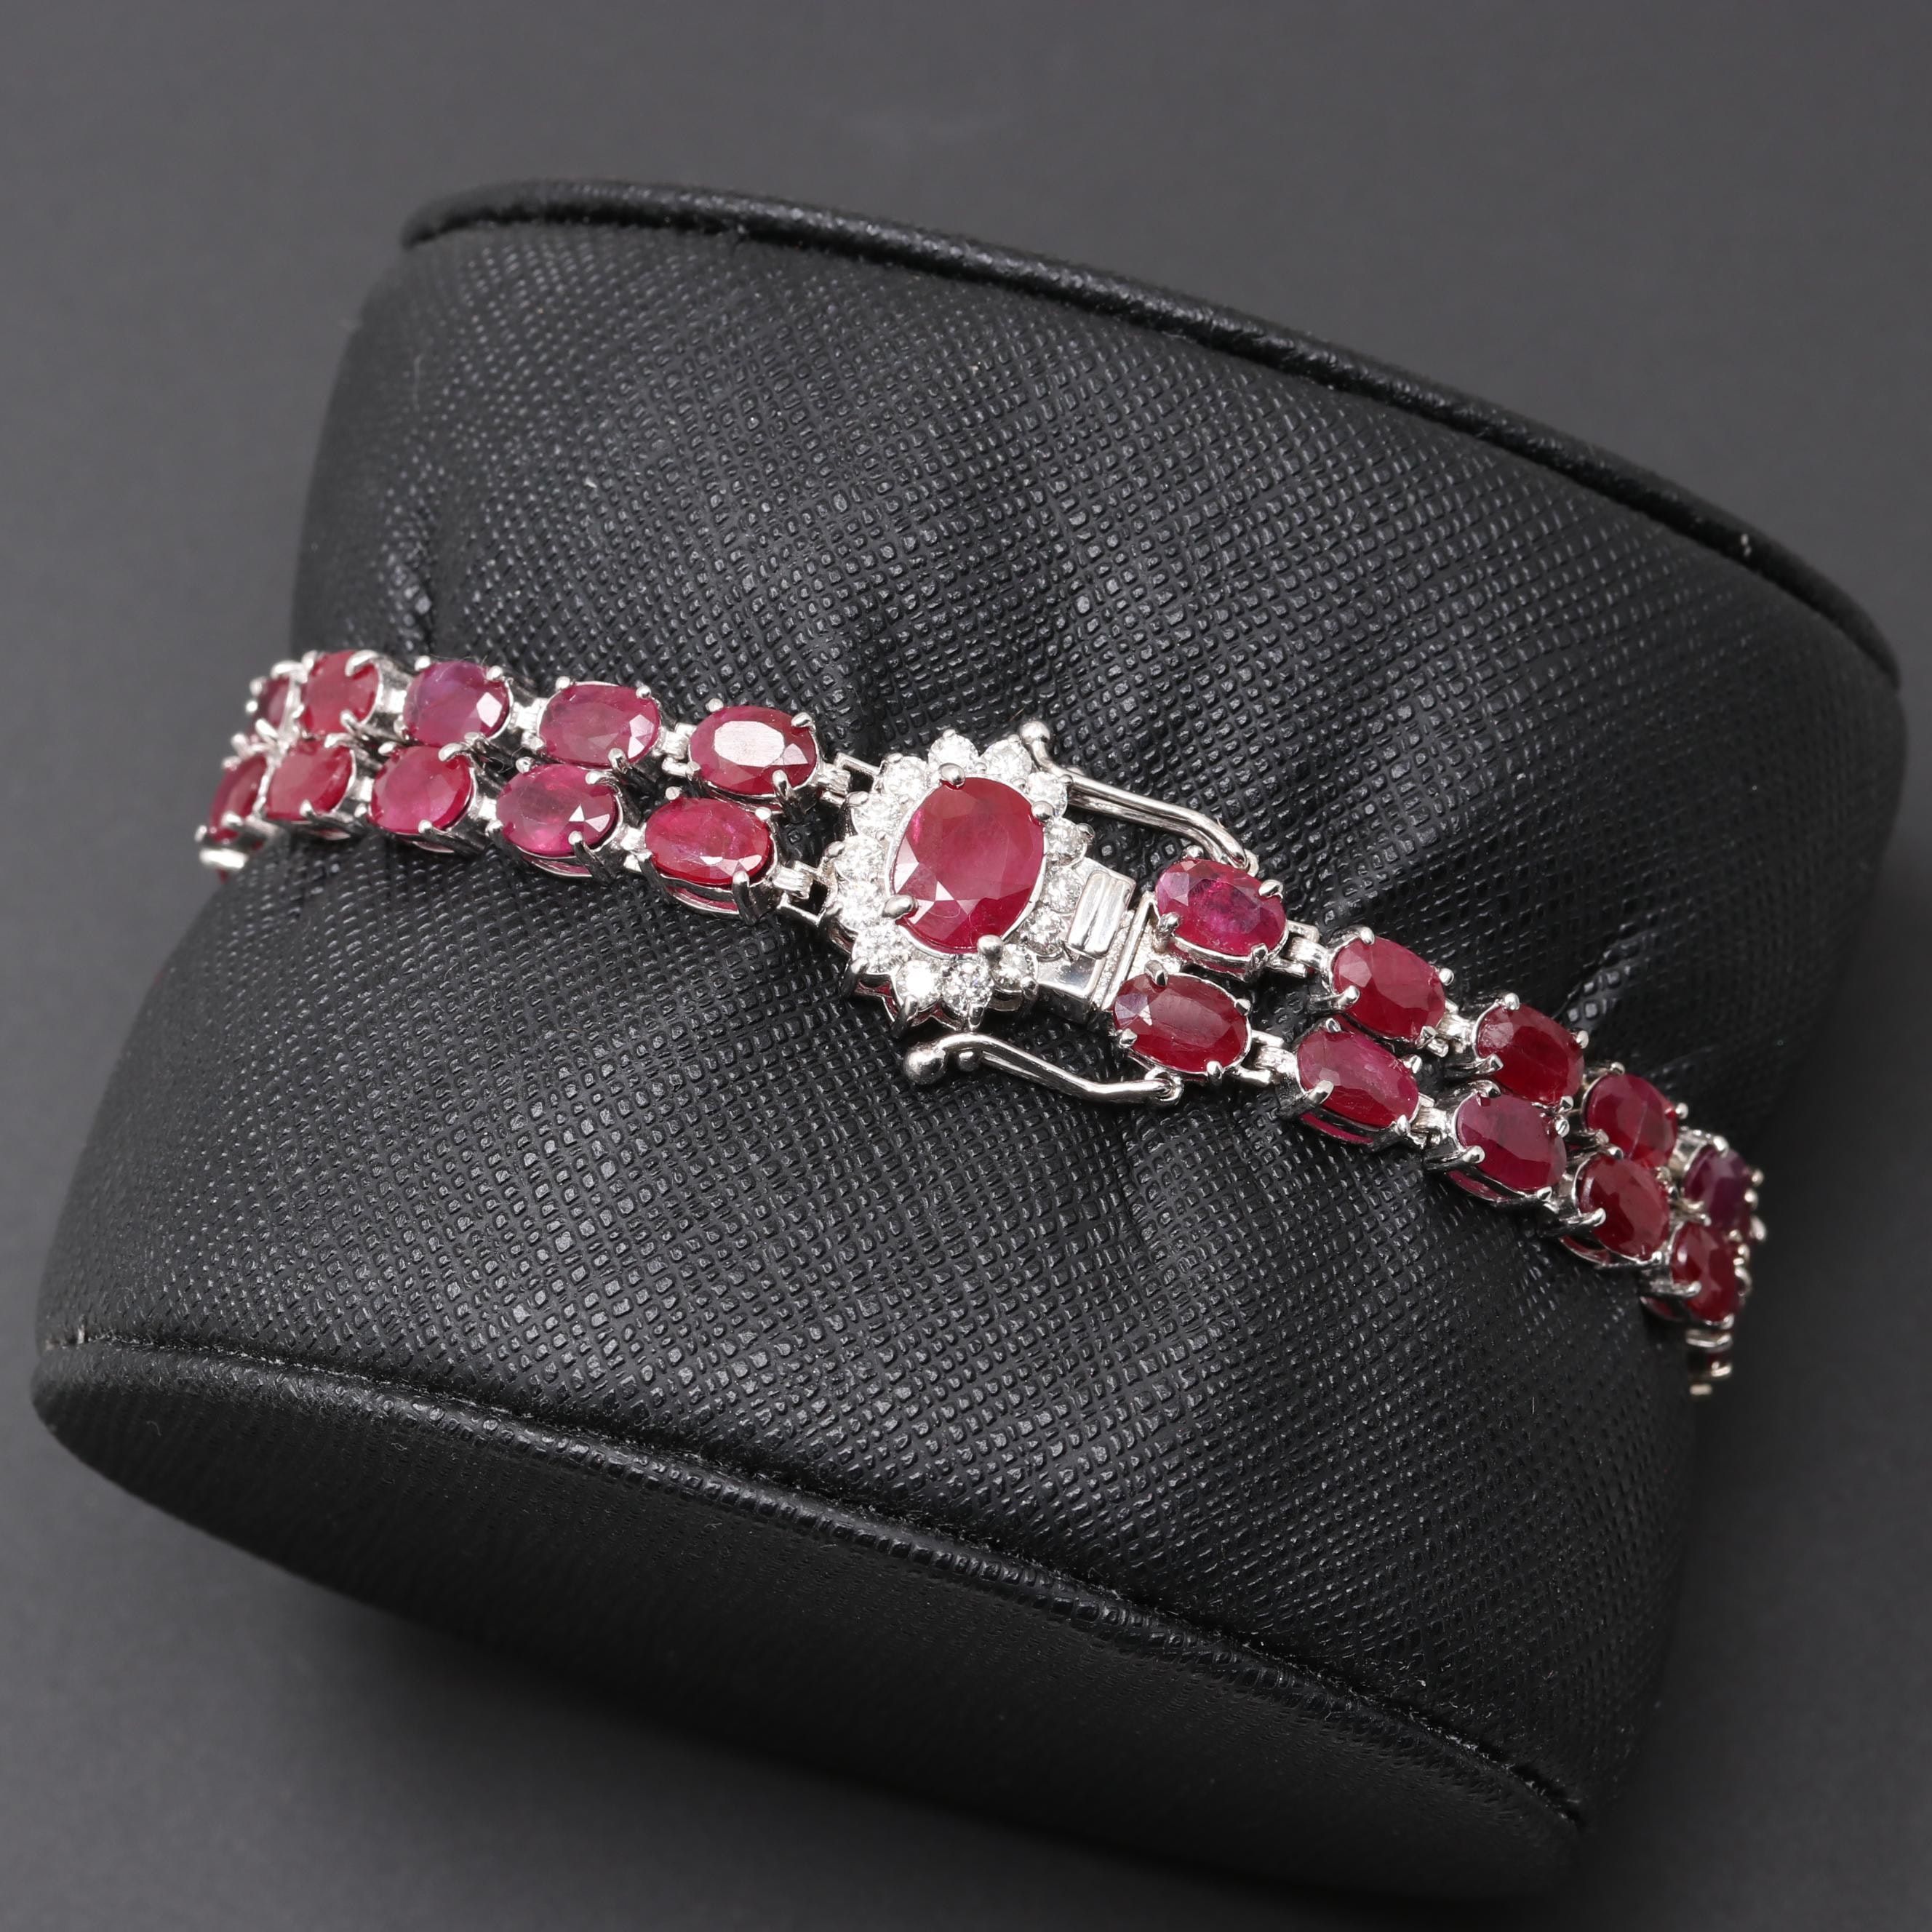 14K White Gold Ruby and Diamond Bracelet with 1.23 CT Center Stone